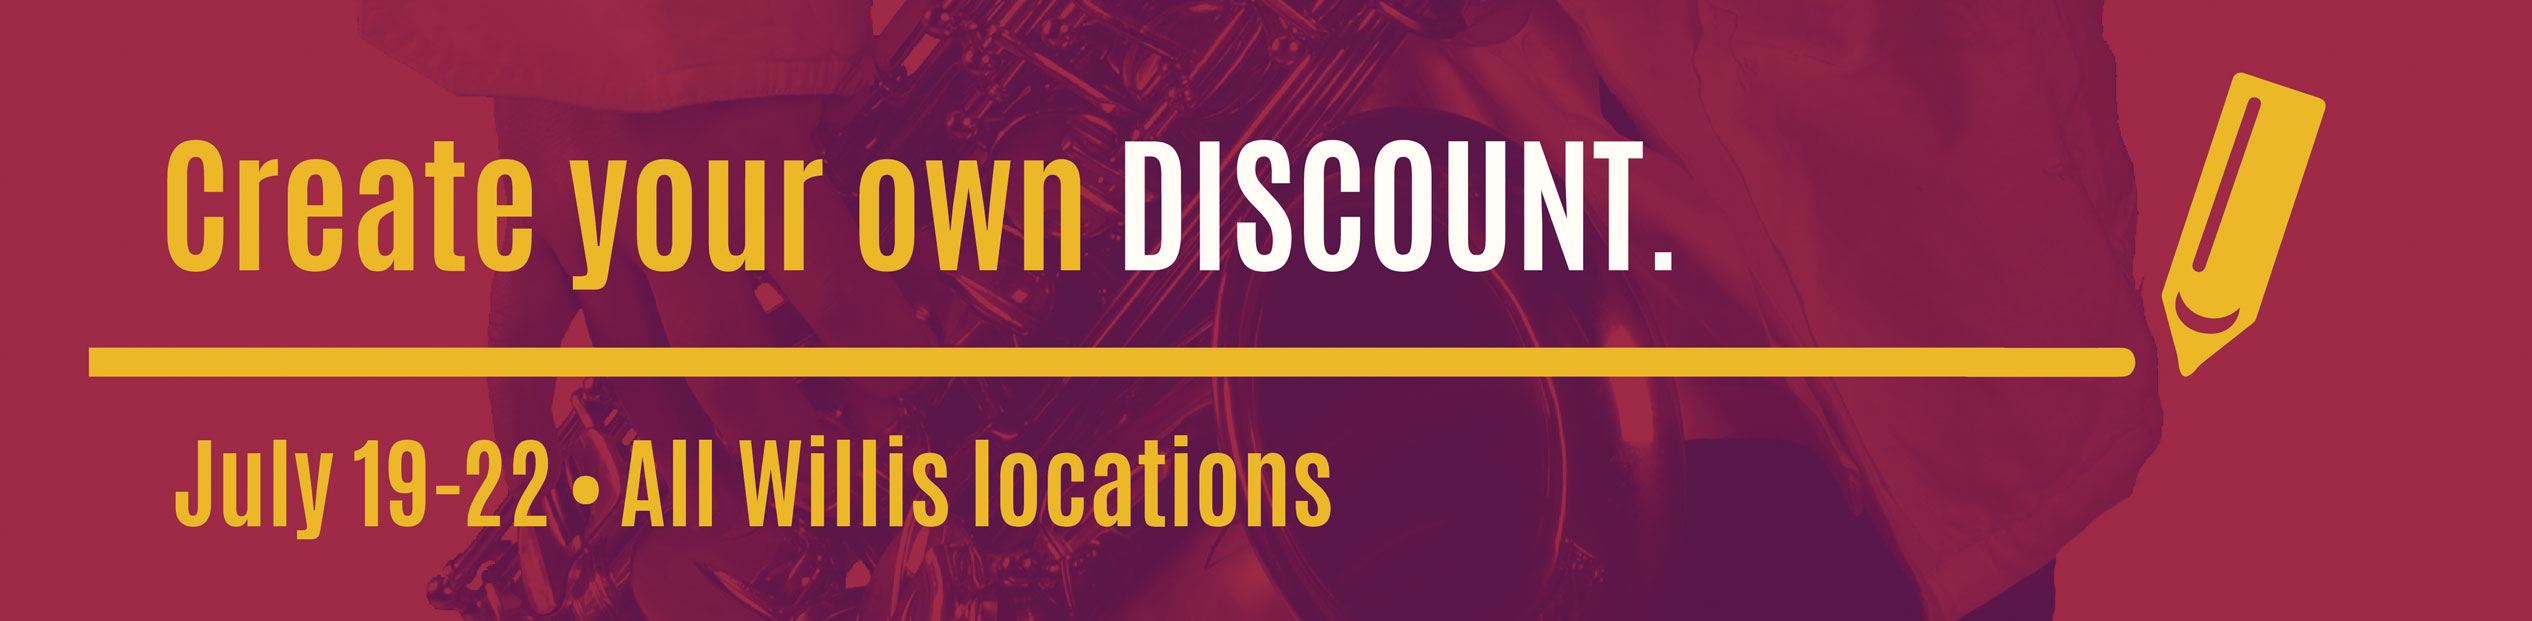 Create Your Own Discount footer